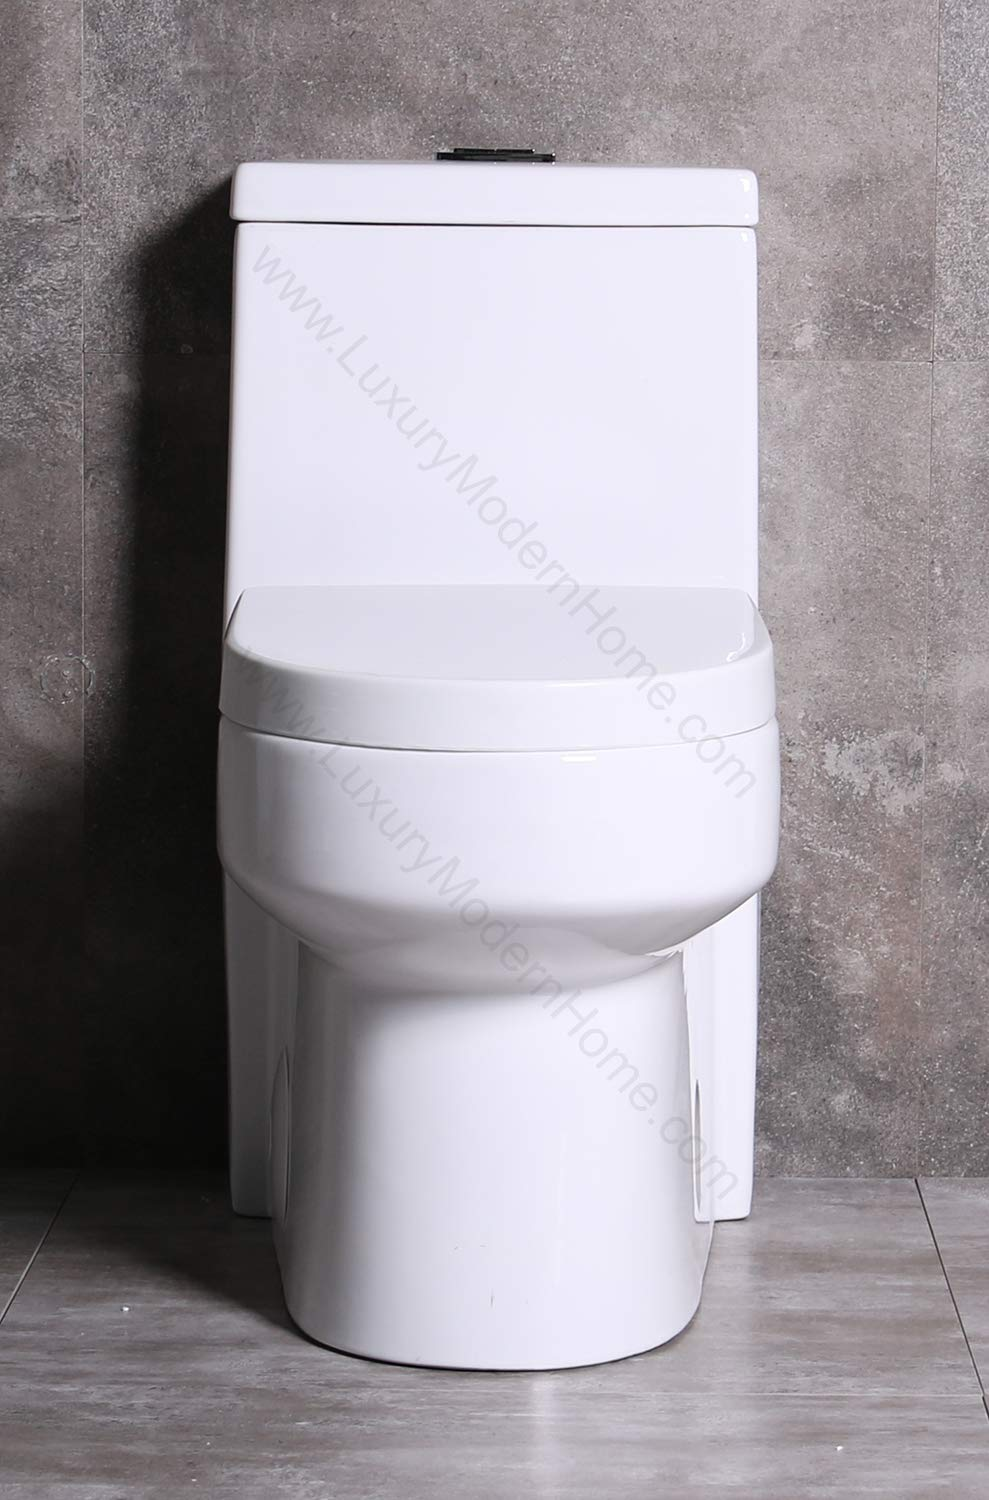 GALBA Small Toilet 24.5'' Long X 13.5'' Wide X 28.5'' High Inch 1-Piece 24'' 25'' Short Compact Bathroom Tiny Mini Commode Water Closet Dual Flush Shortest Projection Elongated Concealed Trapway by www.LuxuryModernHome.com